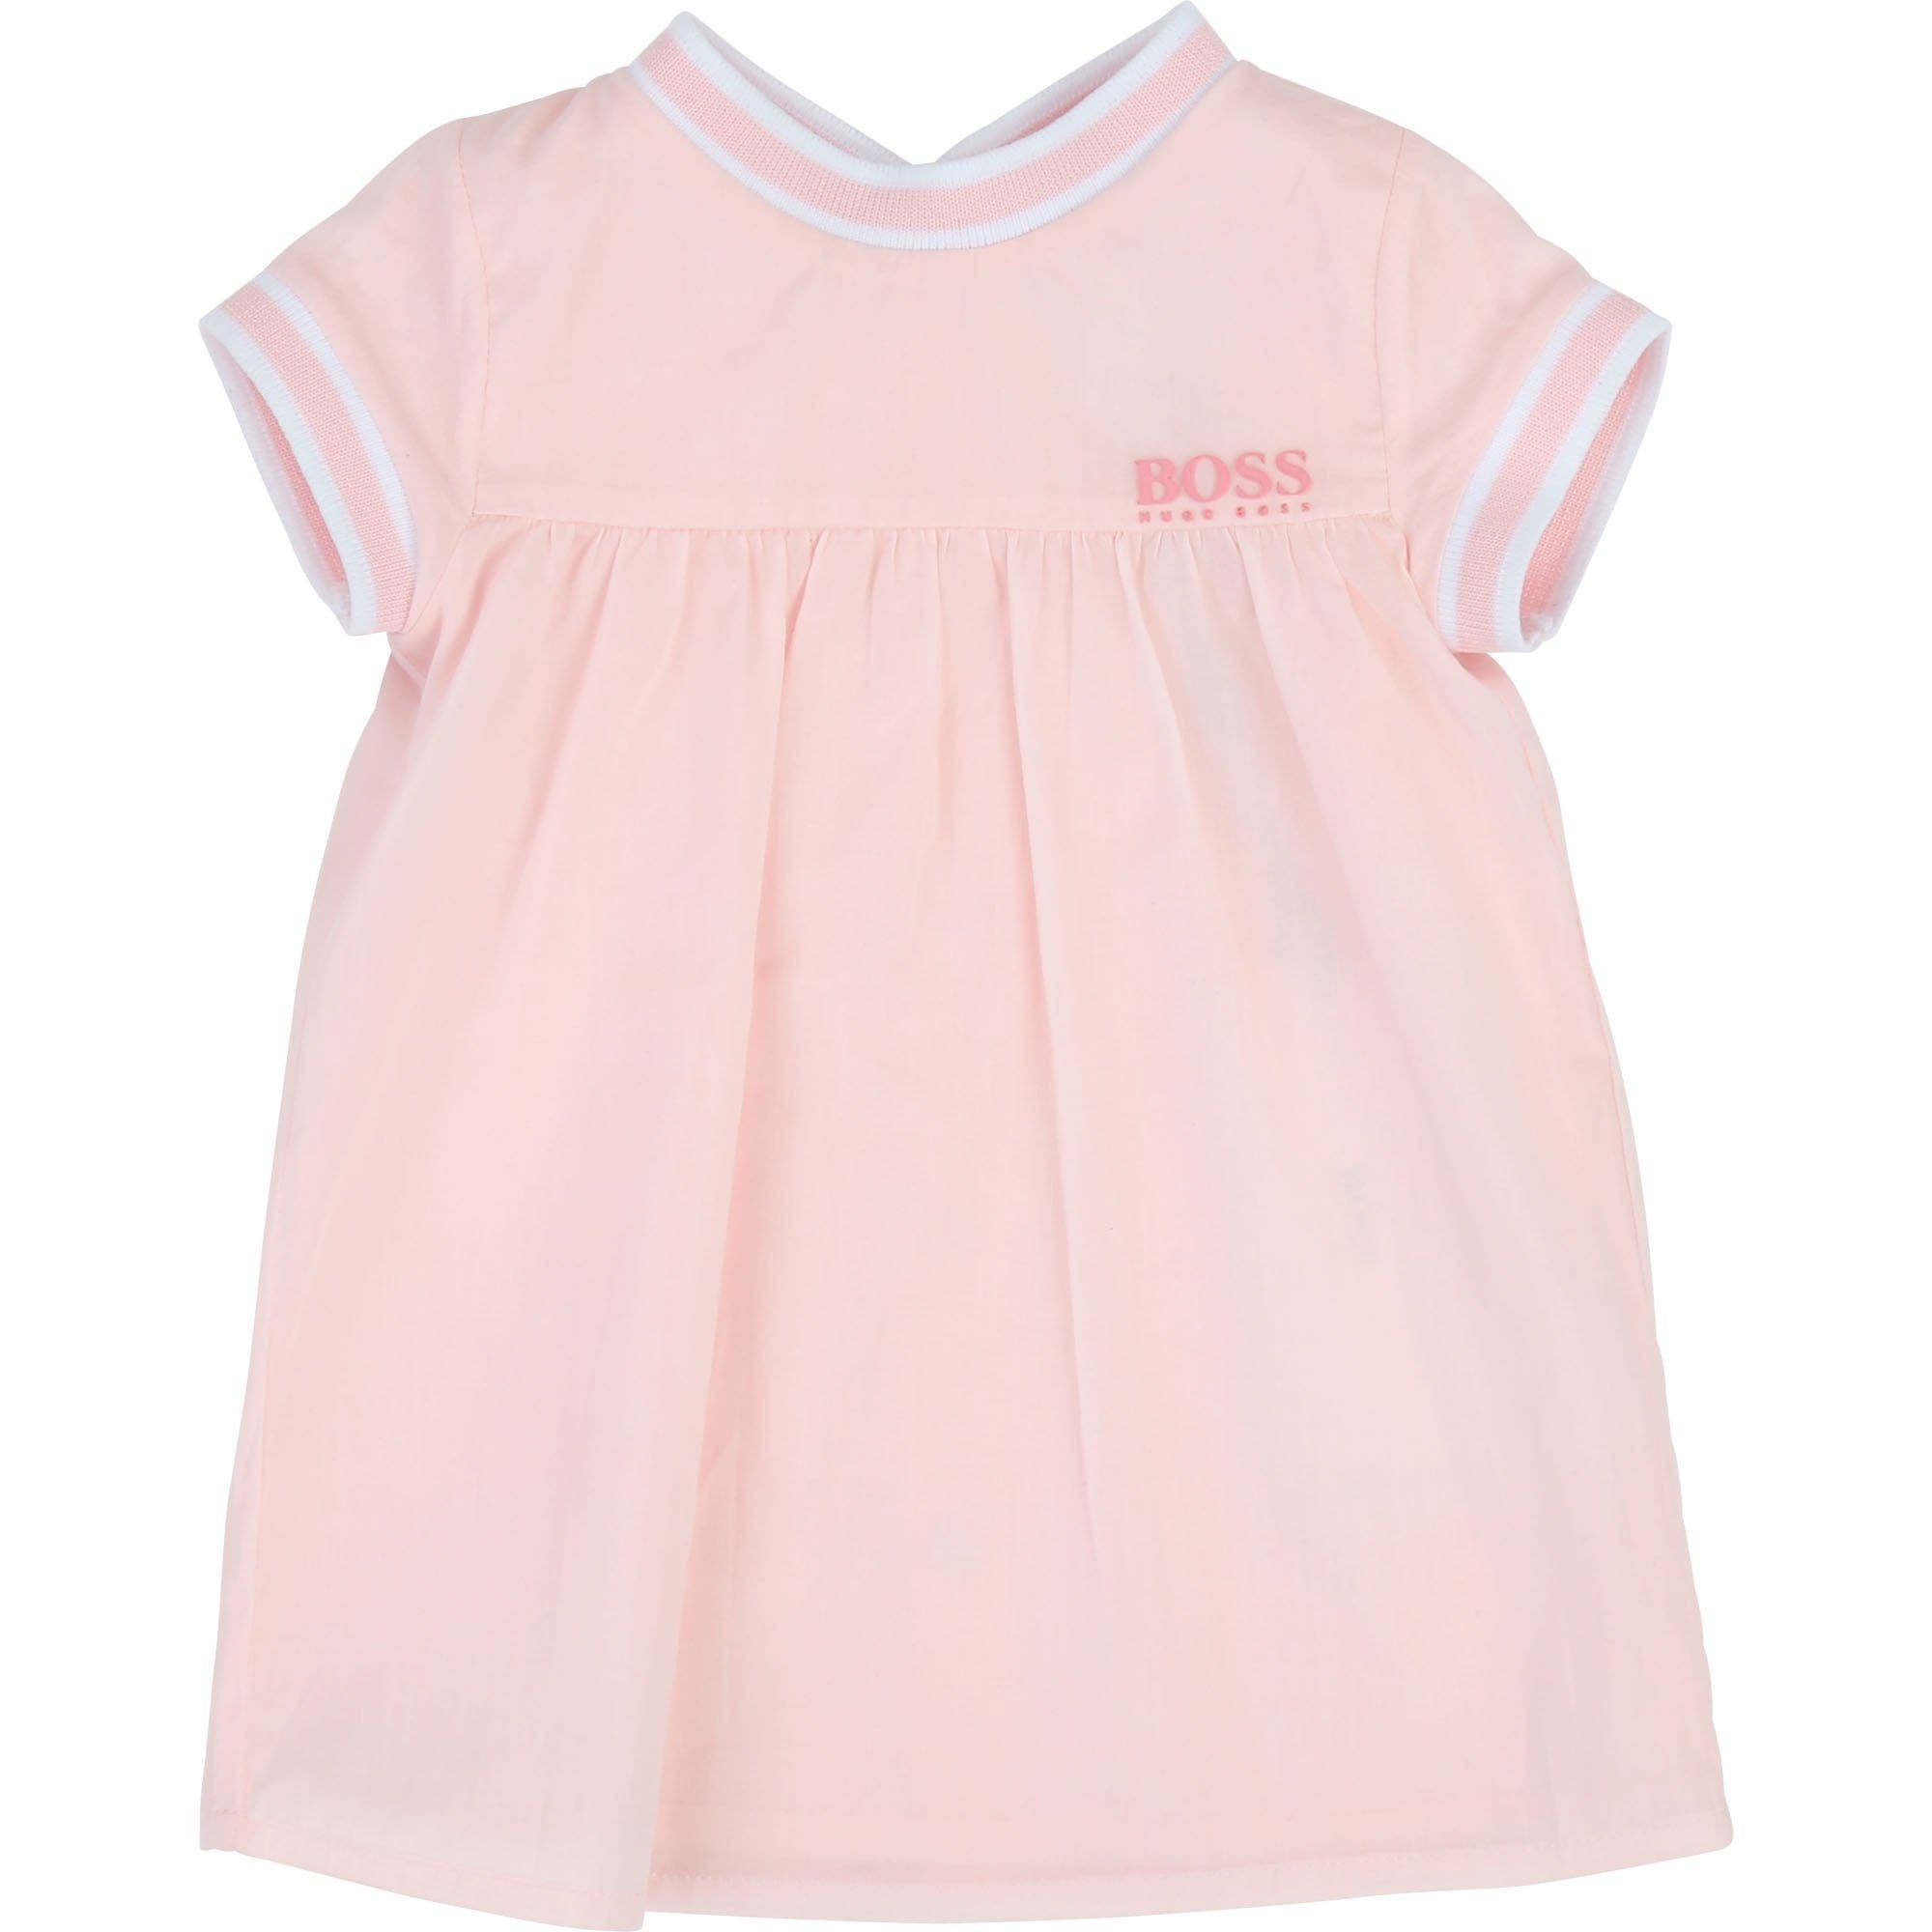 Hugo Boss Baby Dress Pink (4693835481219)